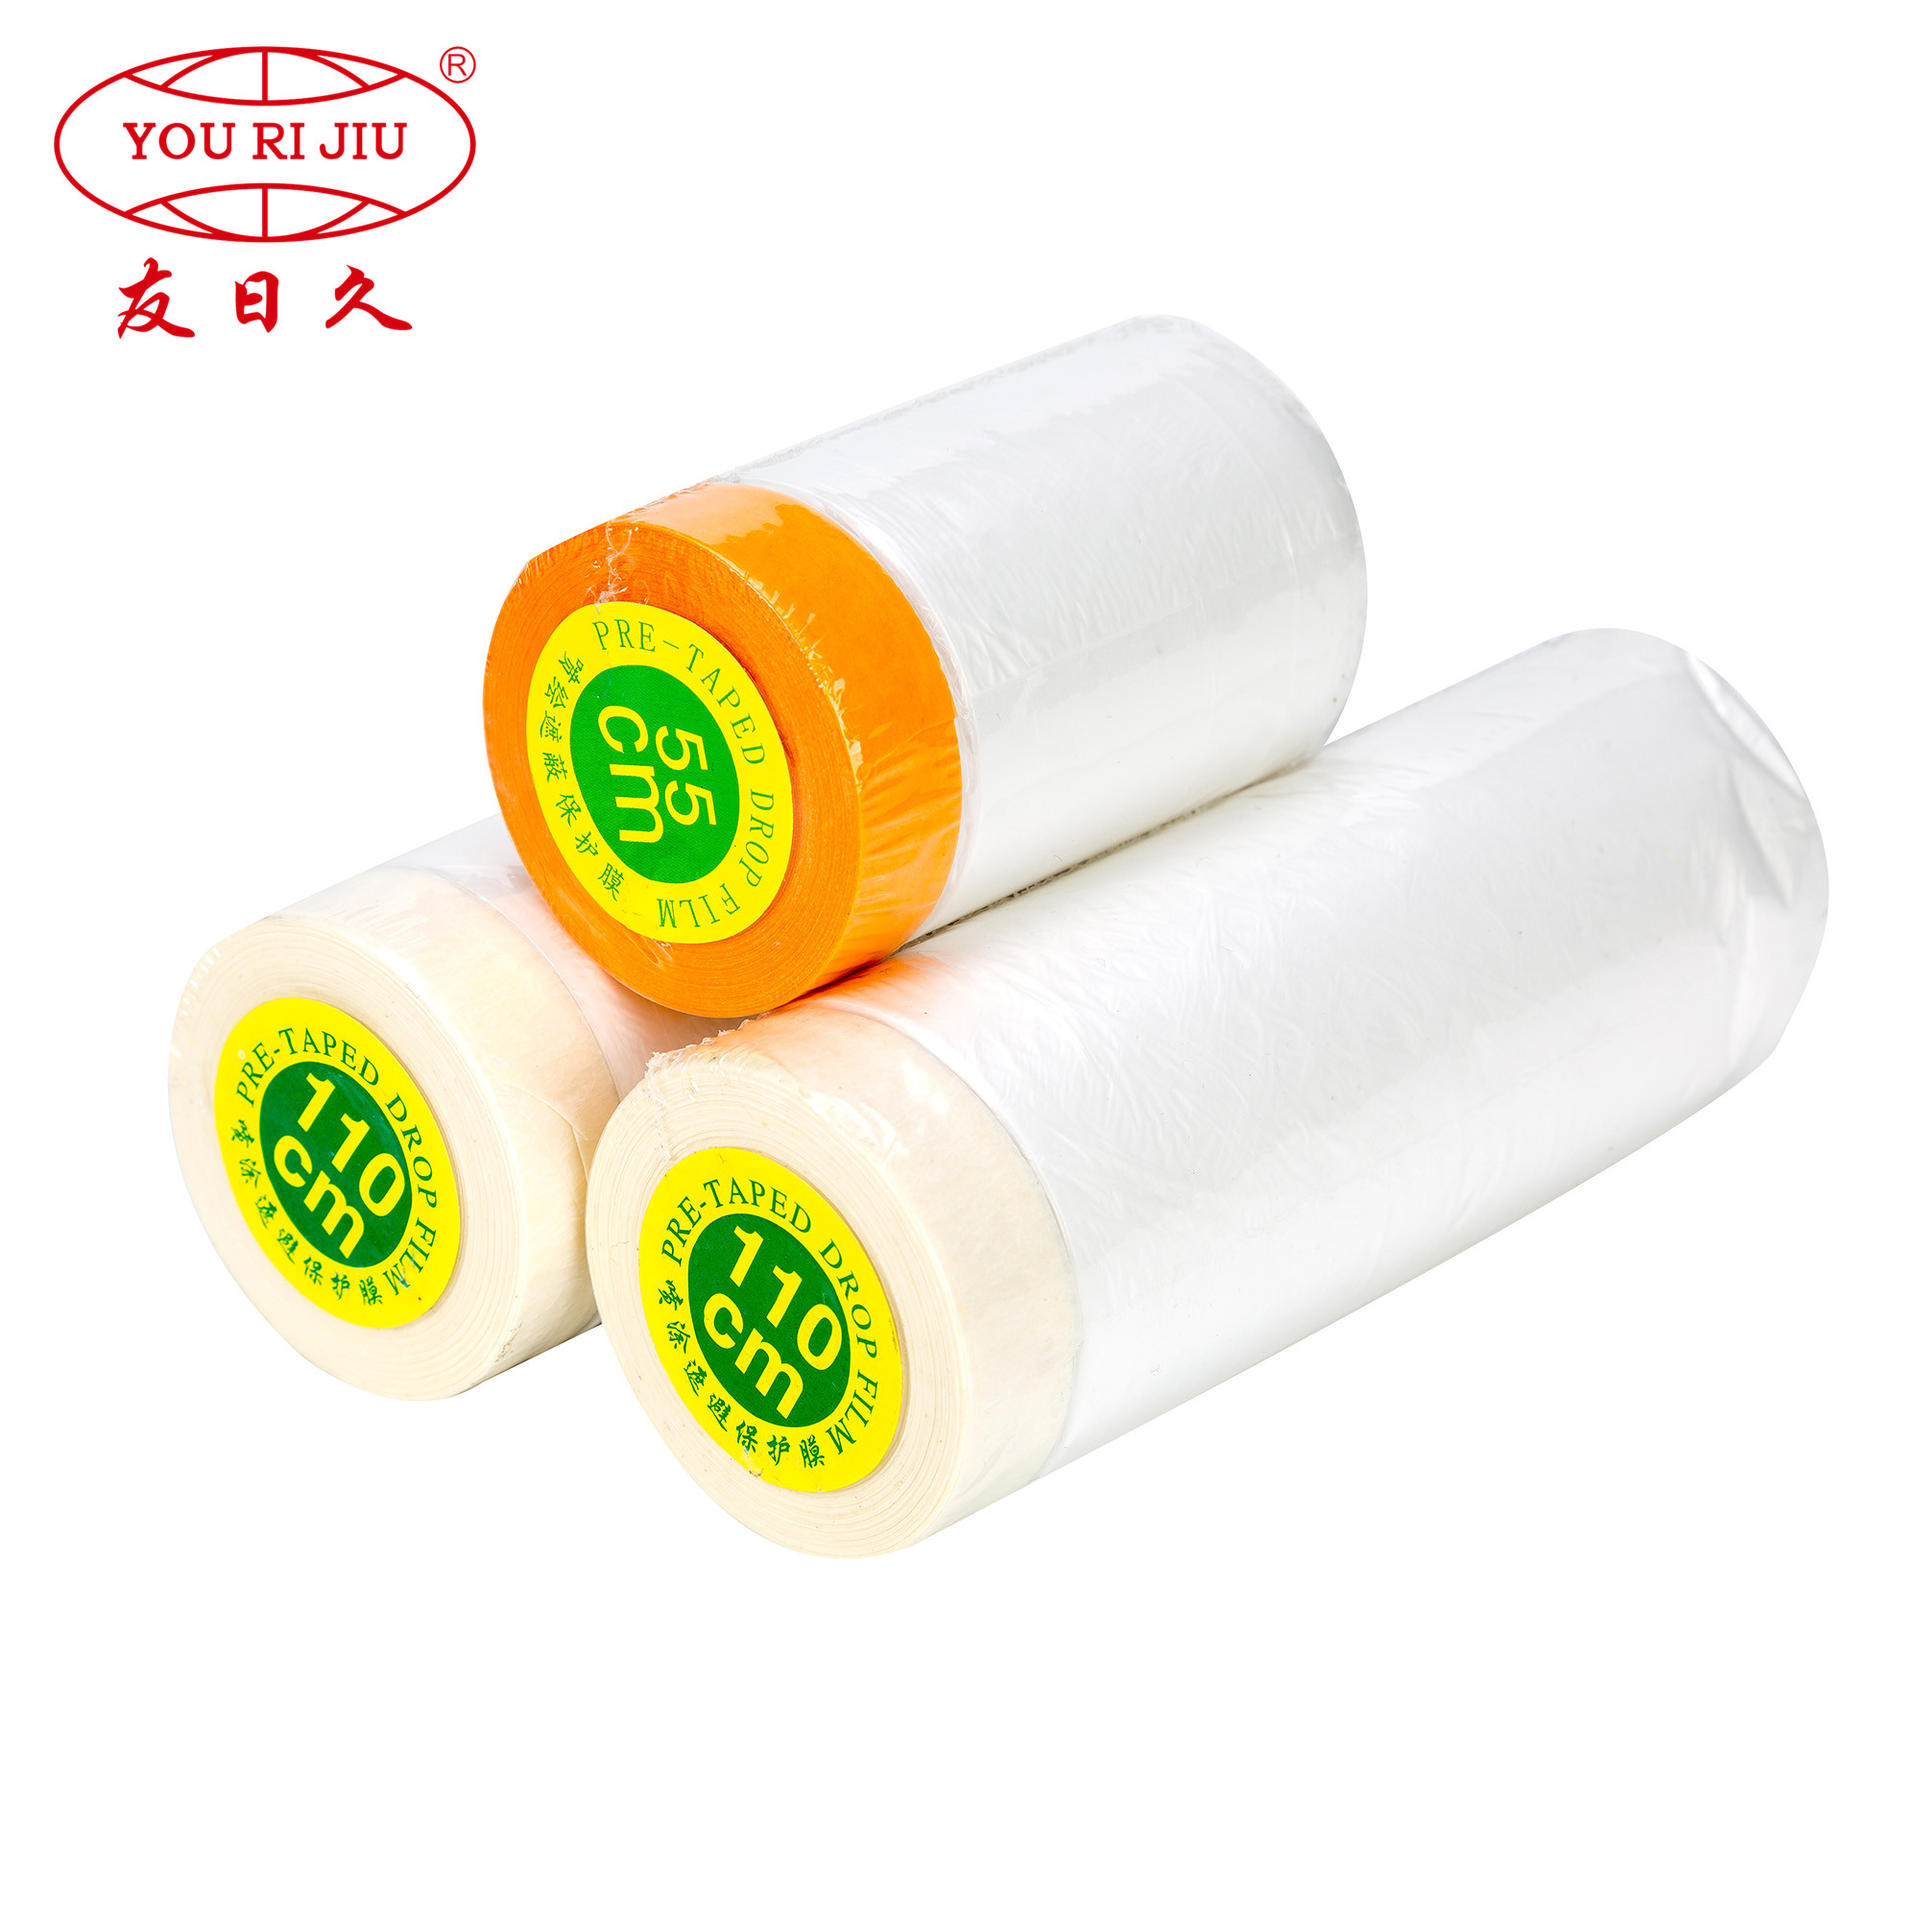 Yourijiu long lasting Masking Film Tape for painting